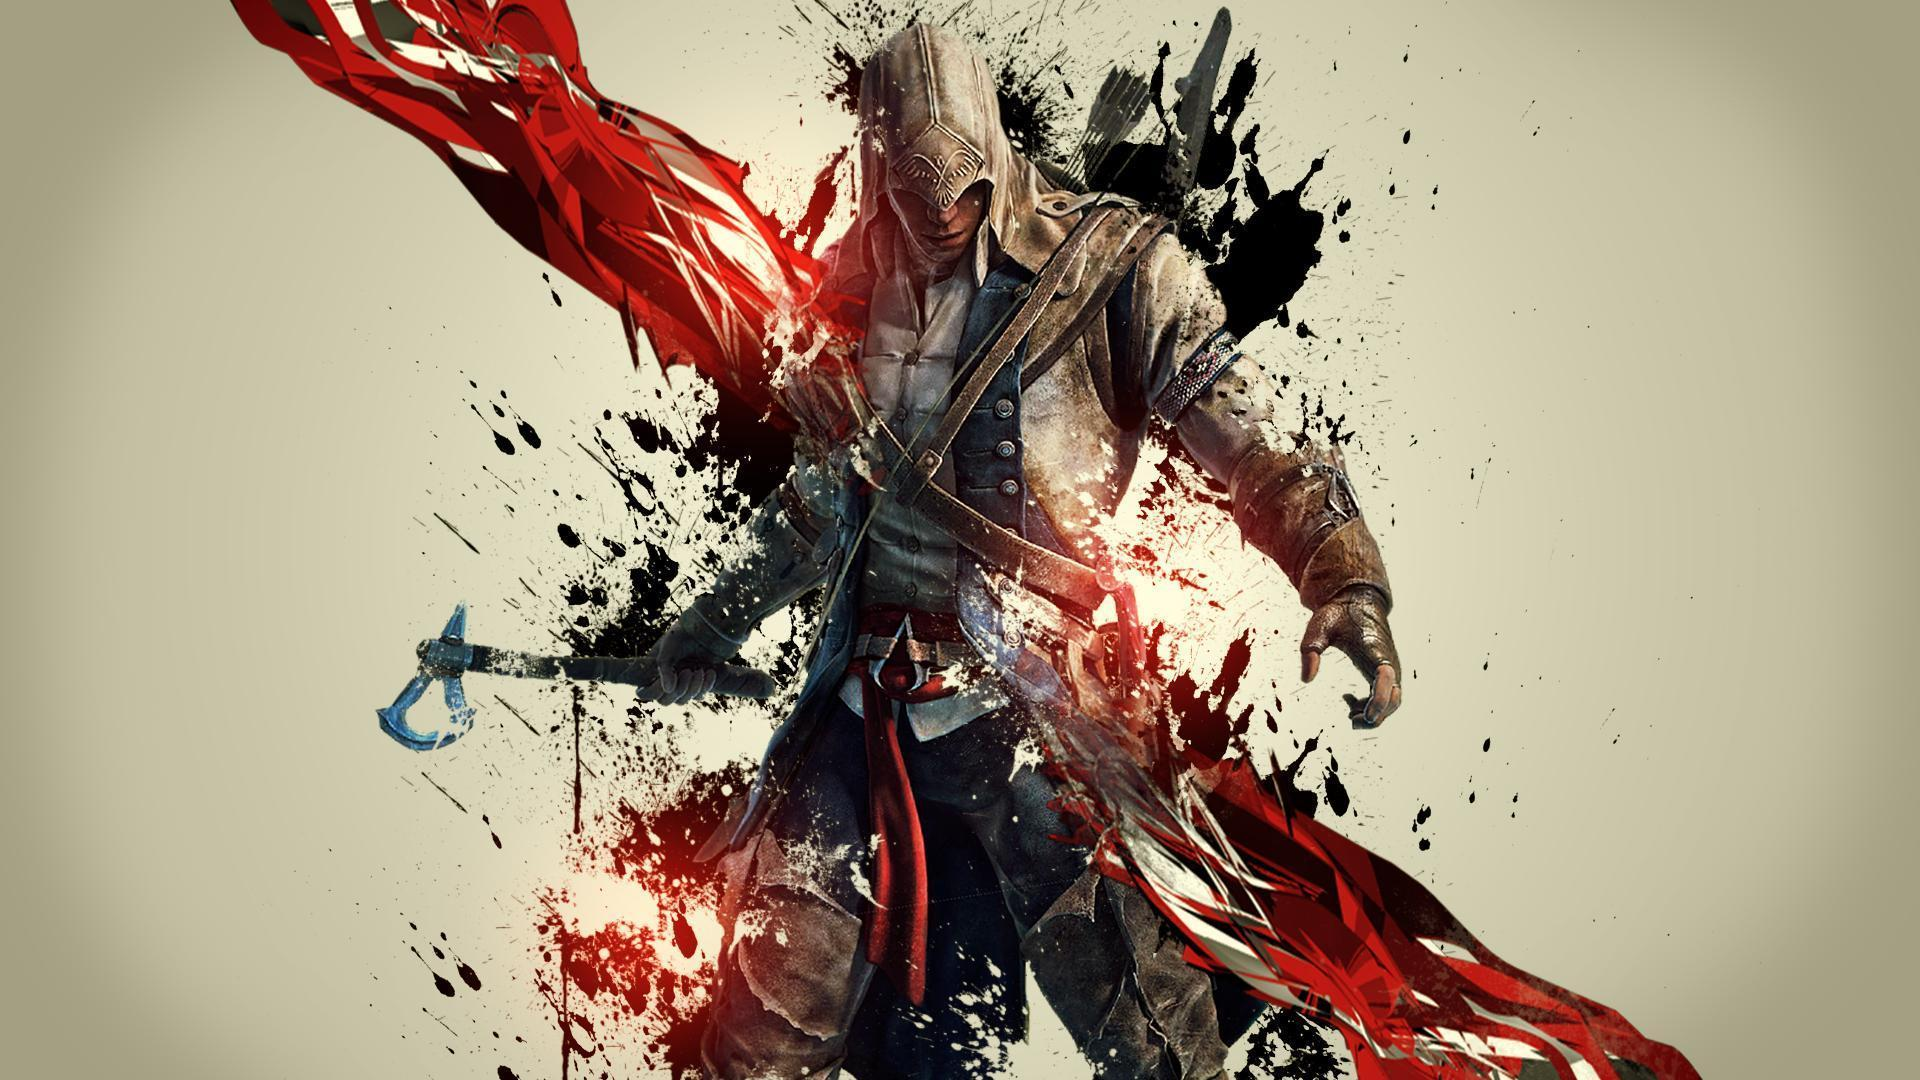 creed iii wallpaper - photo #15